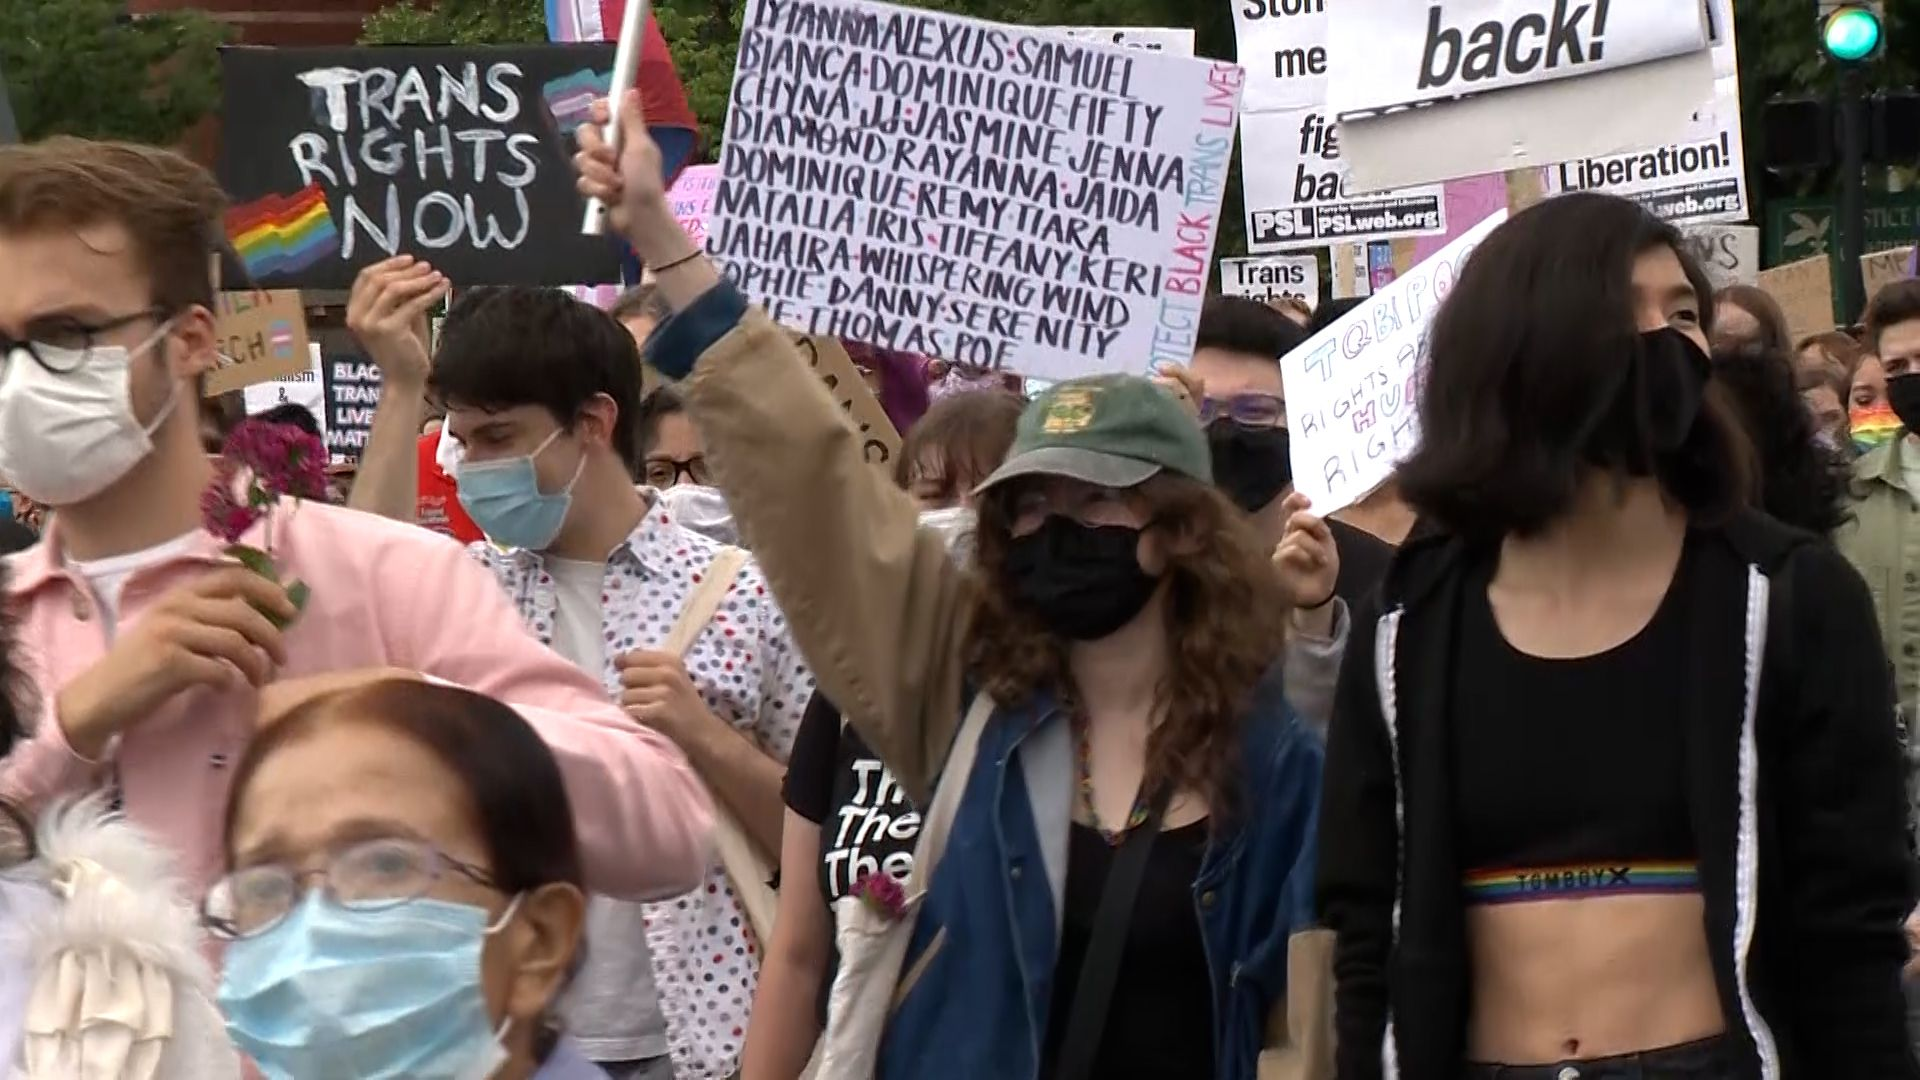 Supporters of transgender community rally, march in Boston on anniversary of Pulse shooting